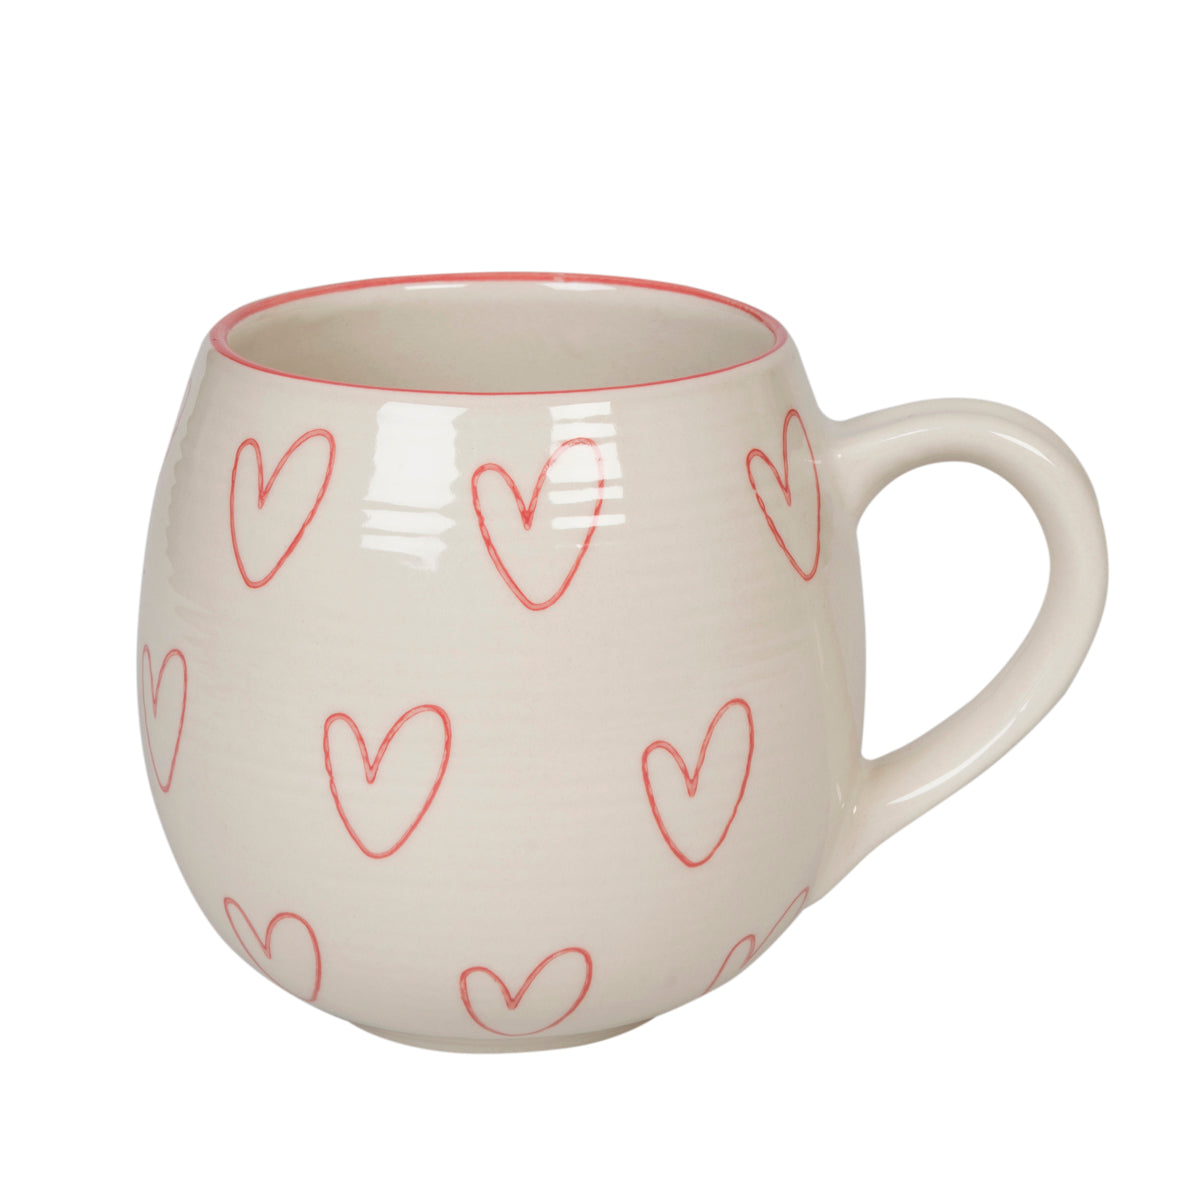 Hearts Stoneware Mug by Sophie Allport